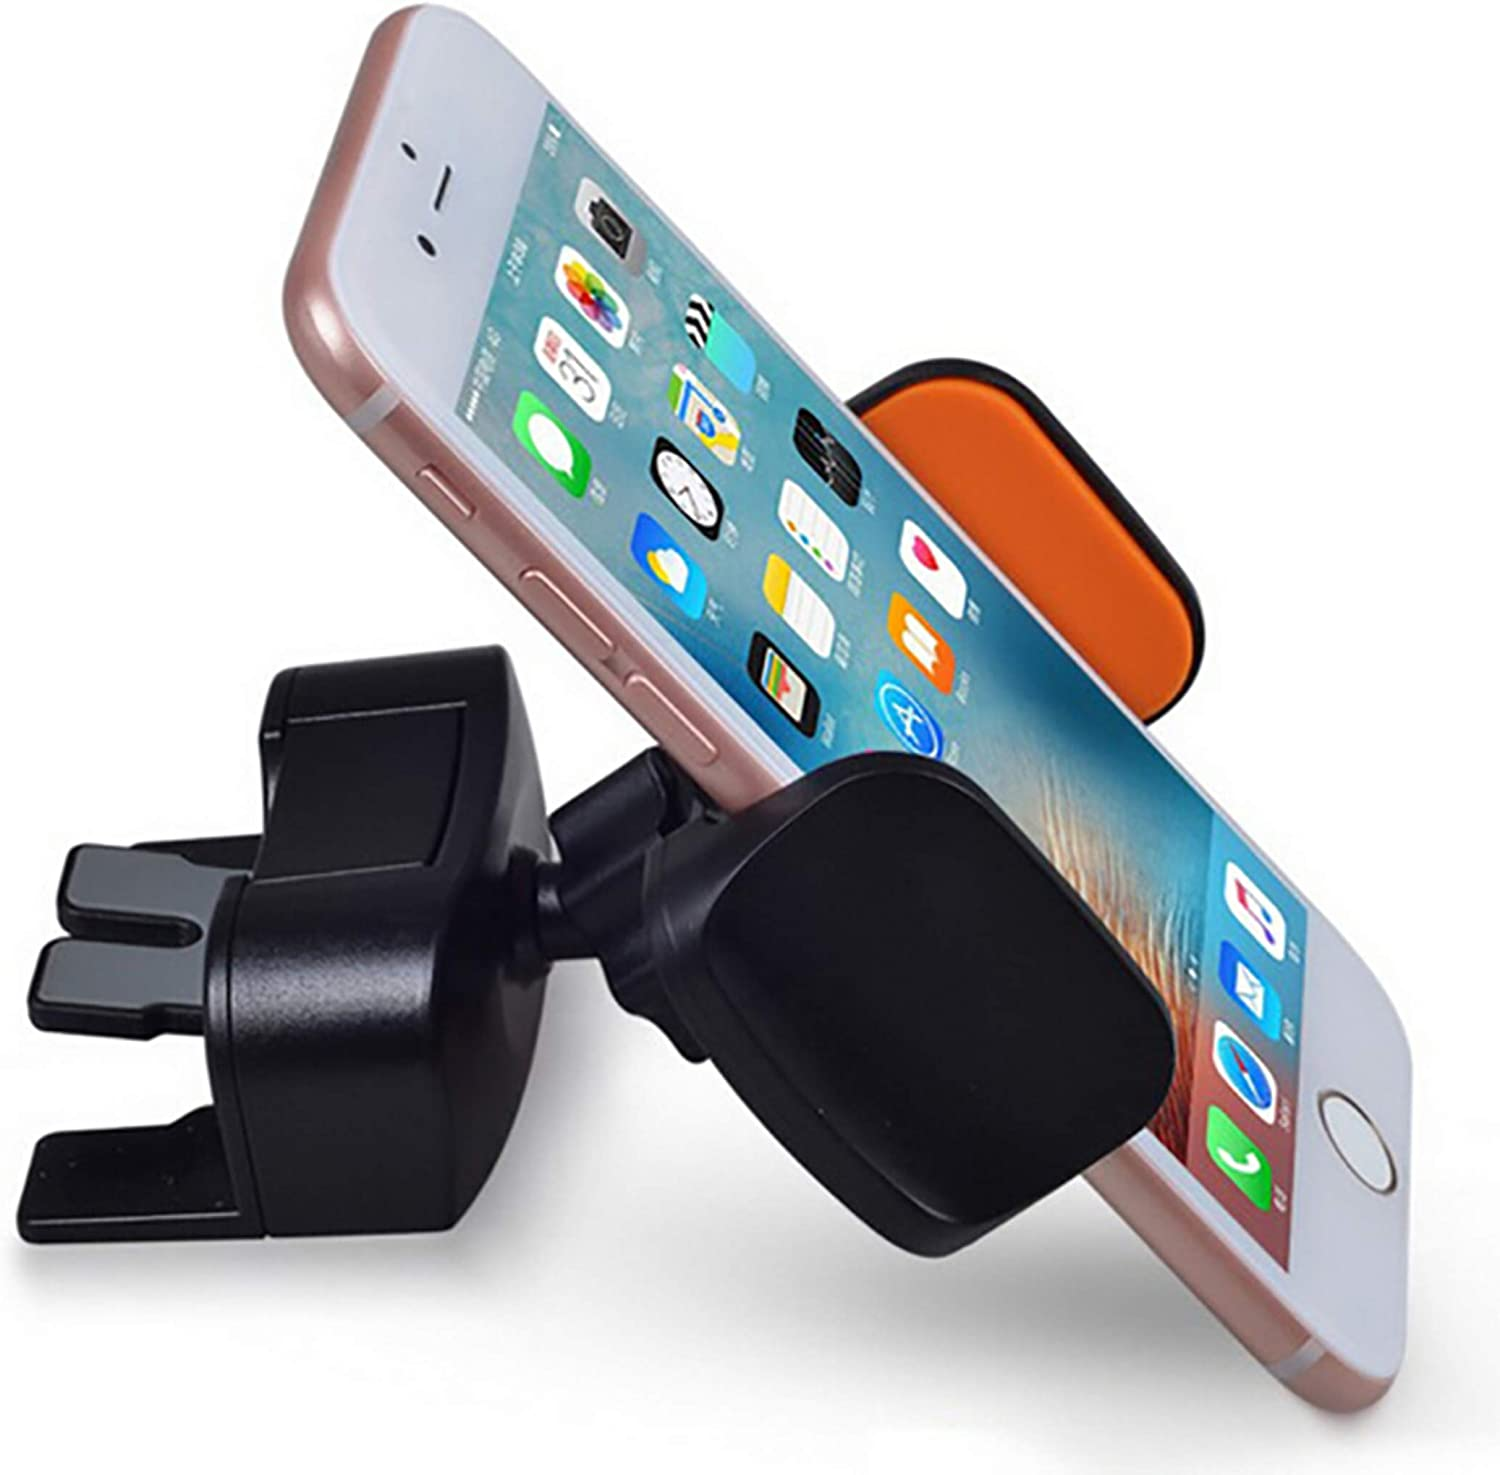 "GPS Pelotek: Cell Phone Car Mount ✮ Car Cell Phone Holder ✮ Long Arm Clamp Strong Suction Cup for Dashboard Windshields with 360/° Rotating Design ✮ Fits All Cell Phones 6.5/"" Easy to Use. Durable"